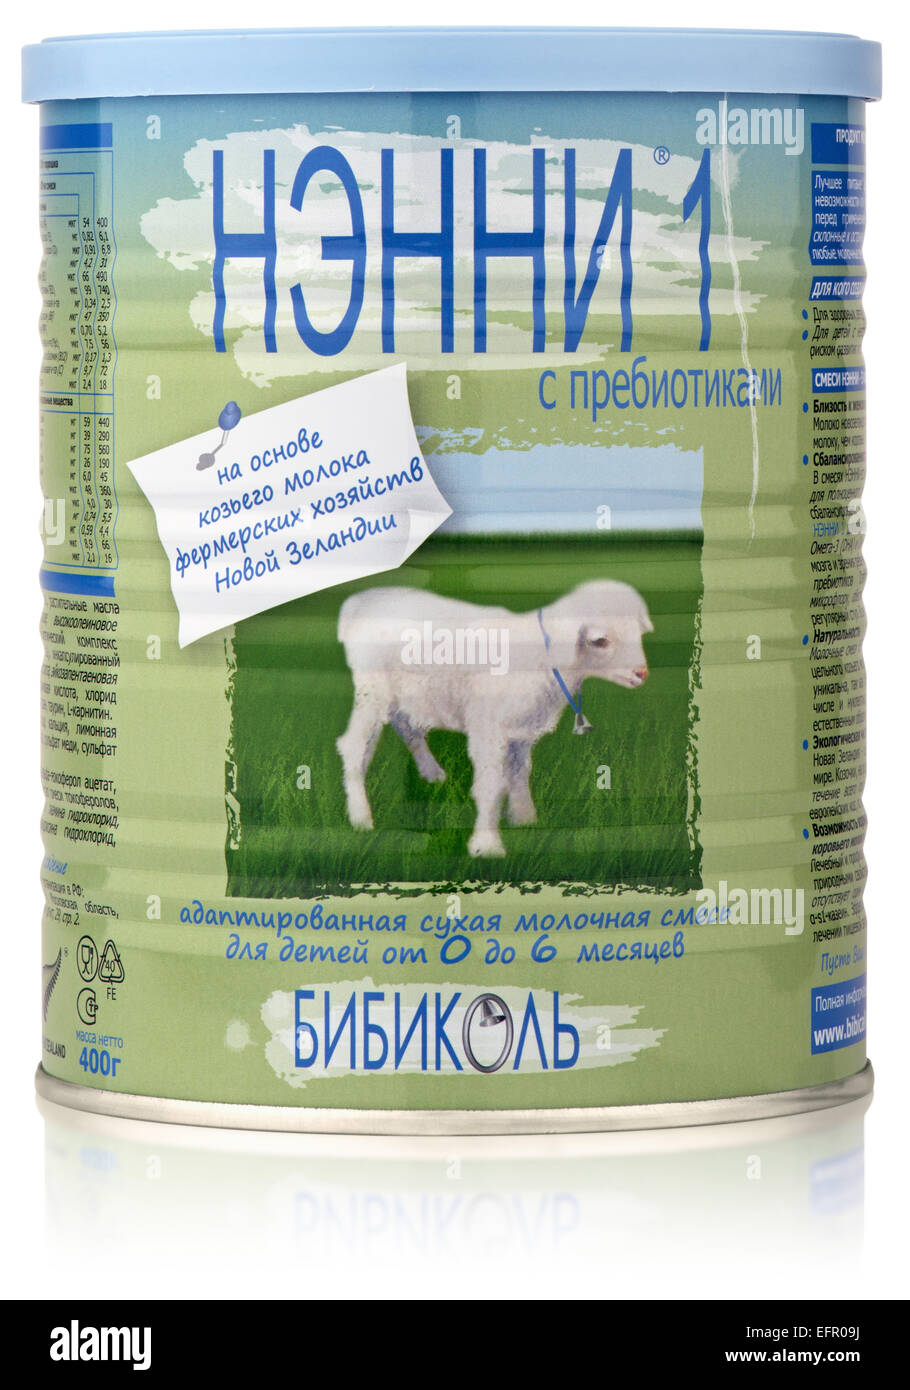 SOCHI, RUSSIA - FEBRUARY 09, 2015: Milk formula Nanny 1 with prebiotics based on goat's milk. Manufactured Russian - Stock Image